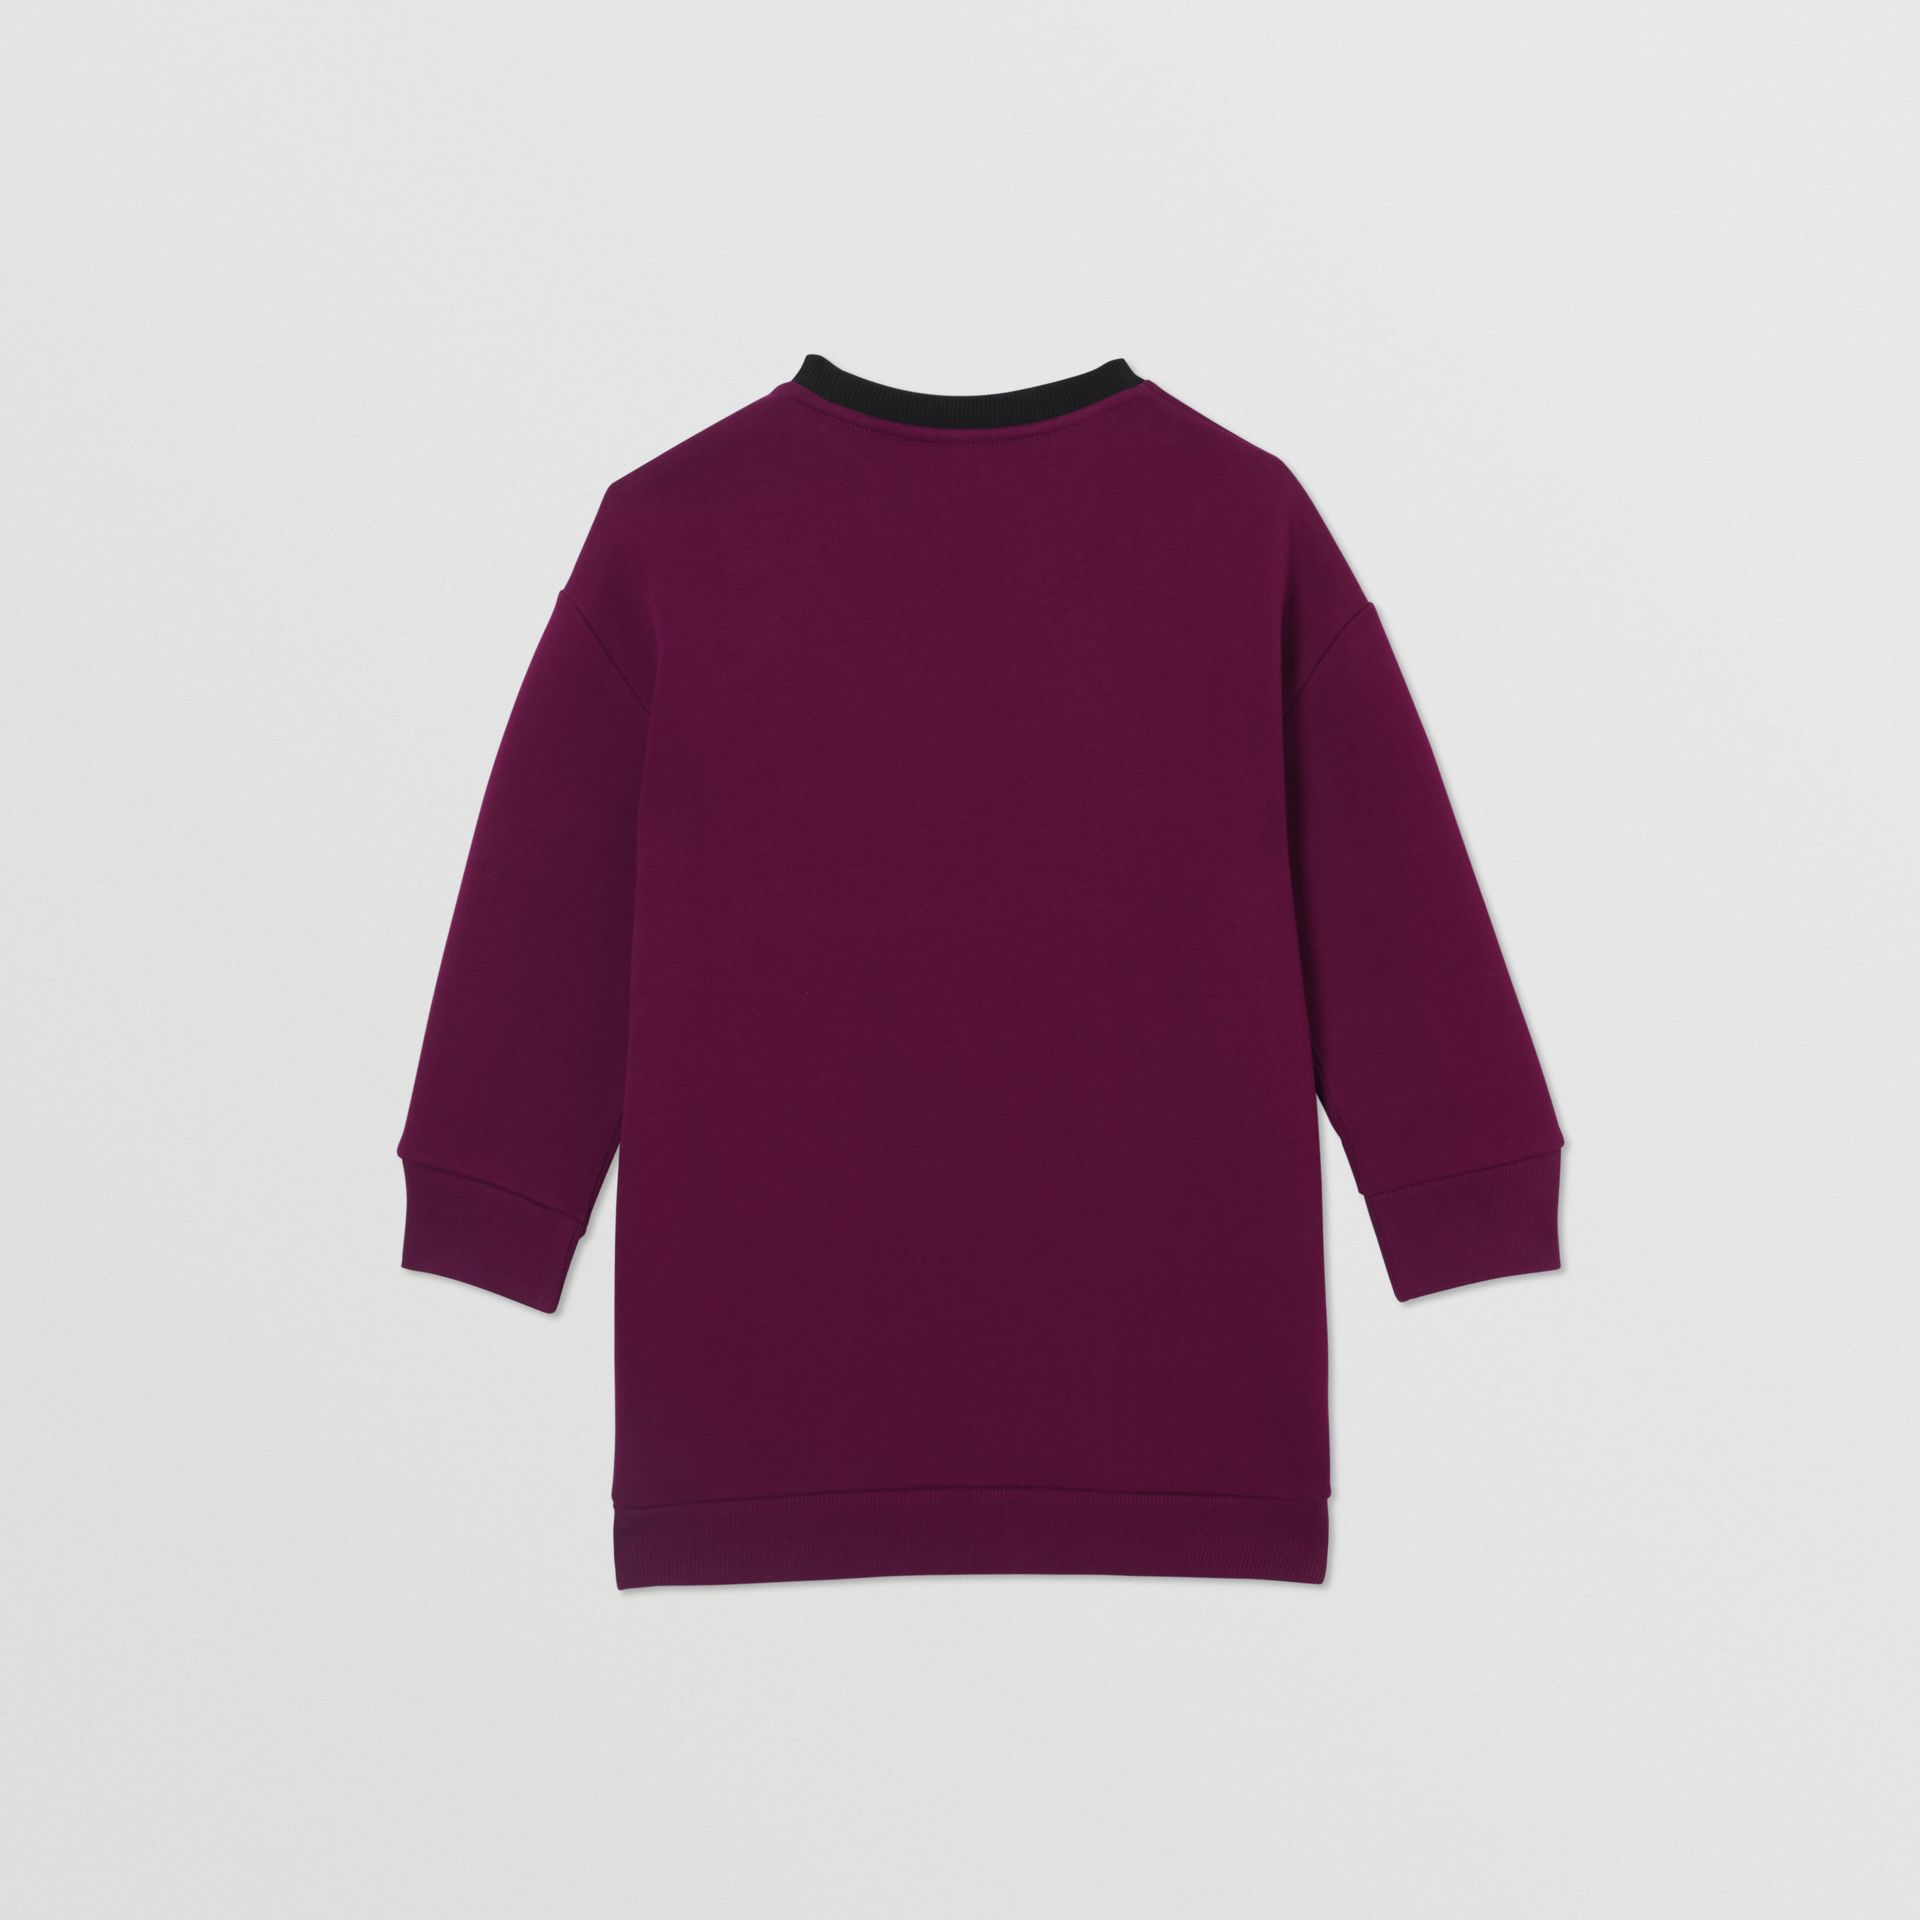 Logo Print Jersey Sweater Dress in Burgundy | Burberry Singapore - gallery image 3